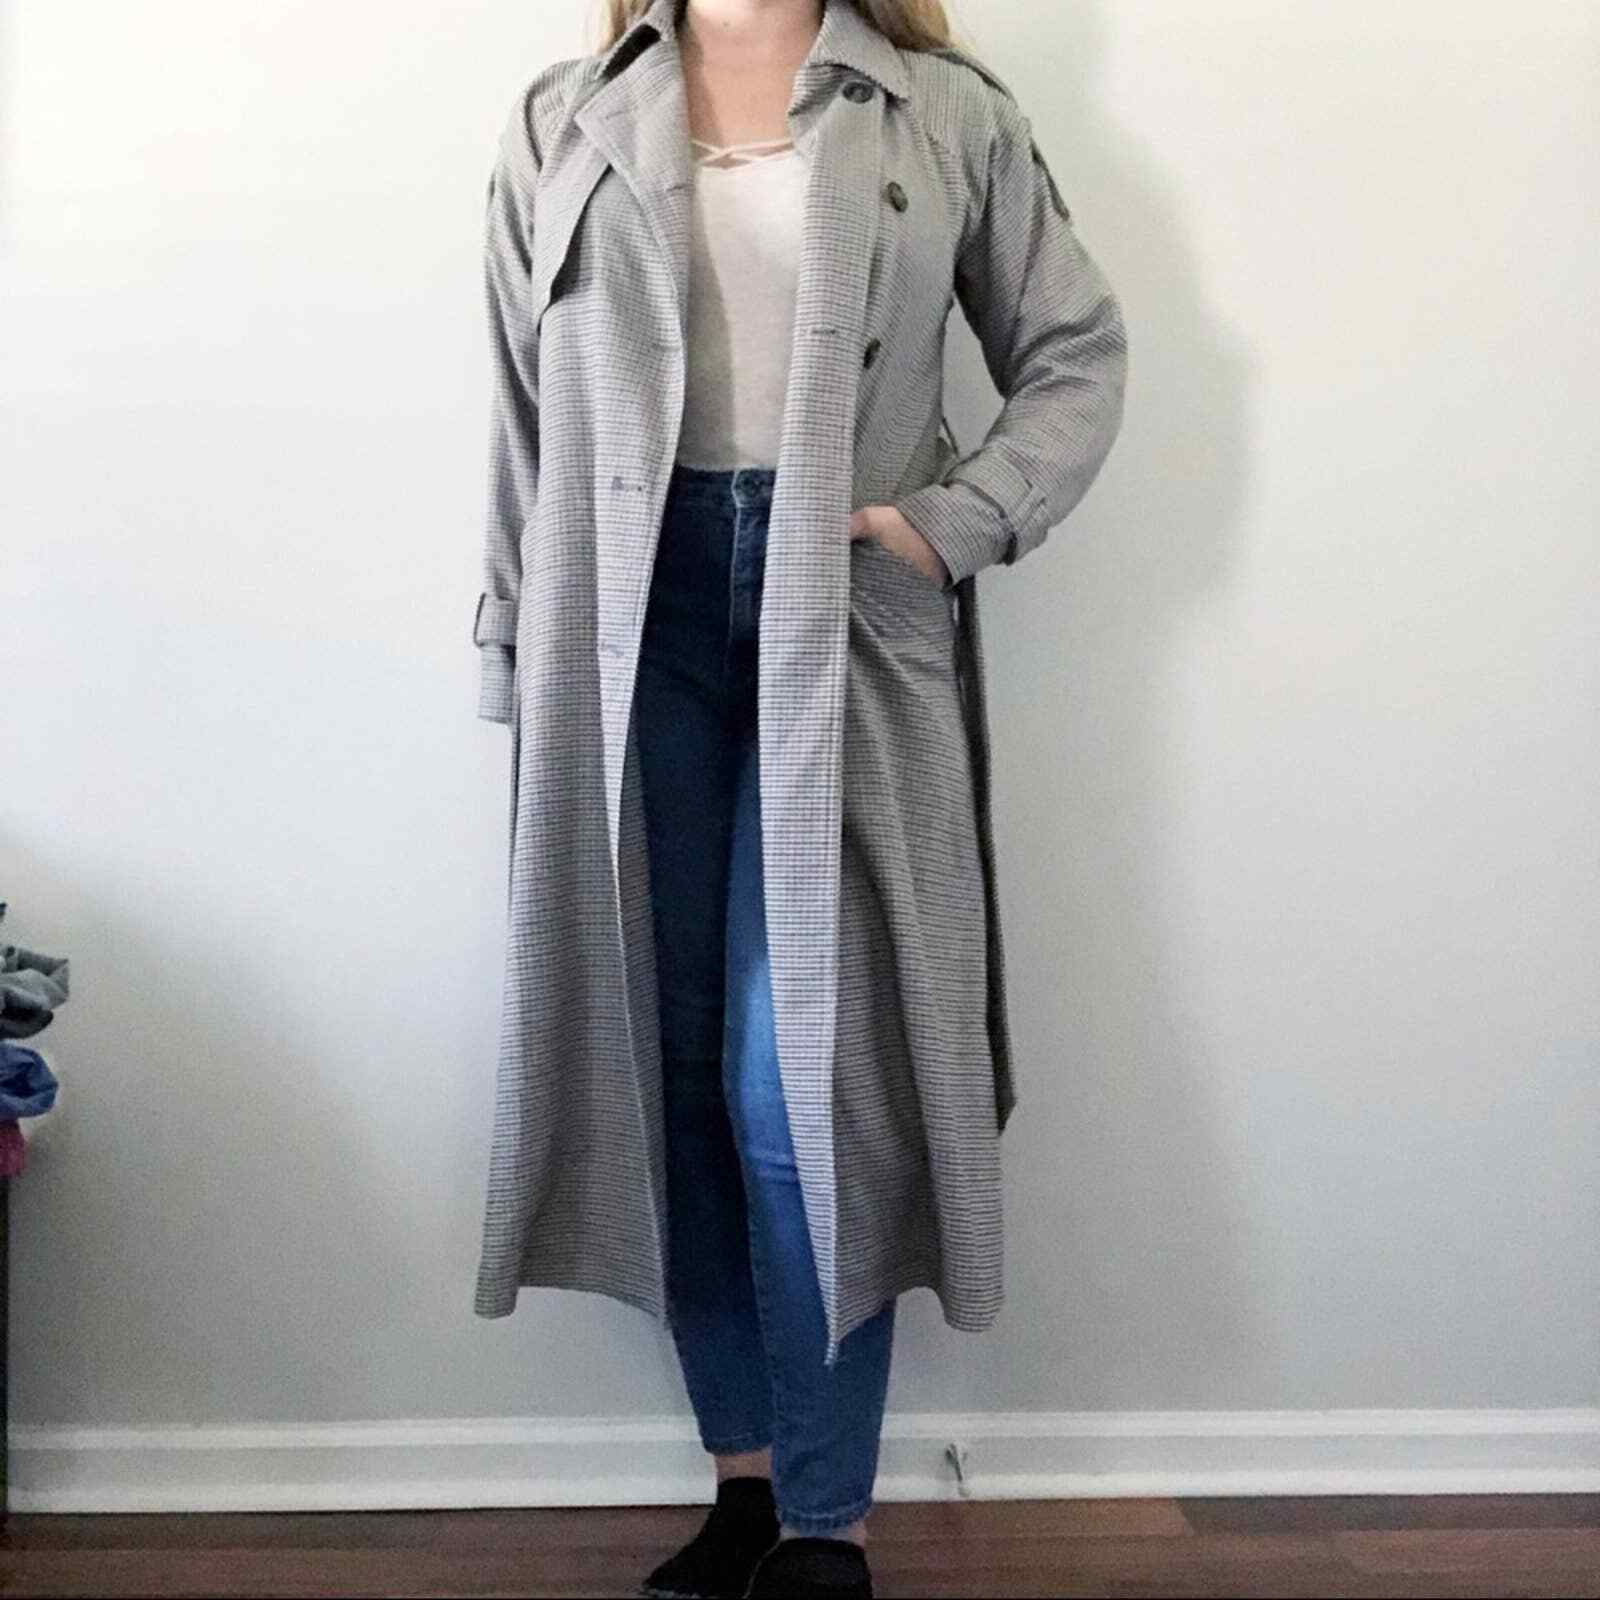 ASOS Tan Gray Houndstooth Long Trench Coat Size 0